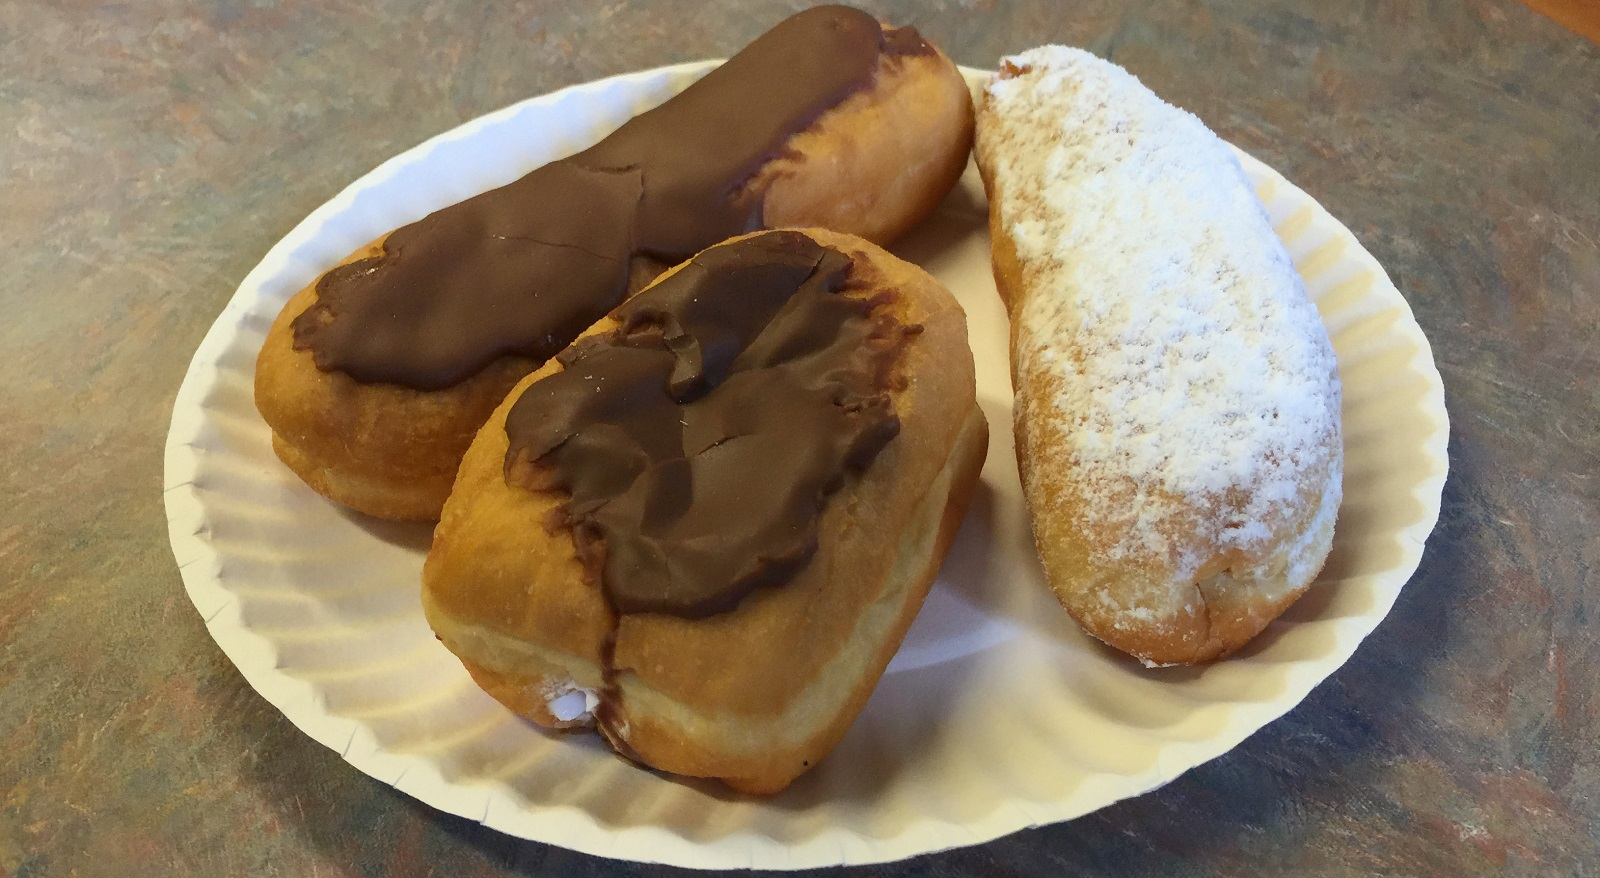 Another look at cream-filled doughnuts from Eileen's Bakery in West Seneca. (Andrew Galarneau/Buffalo News)